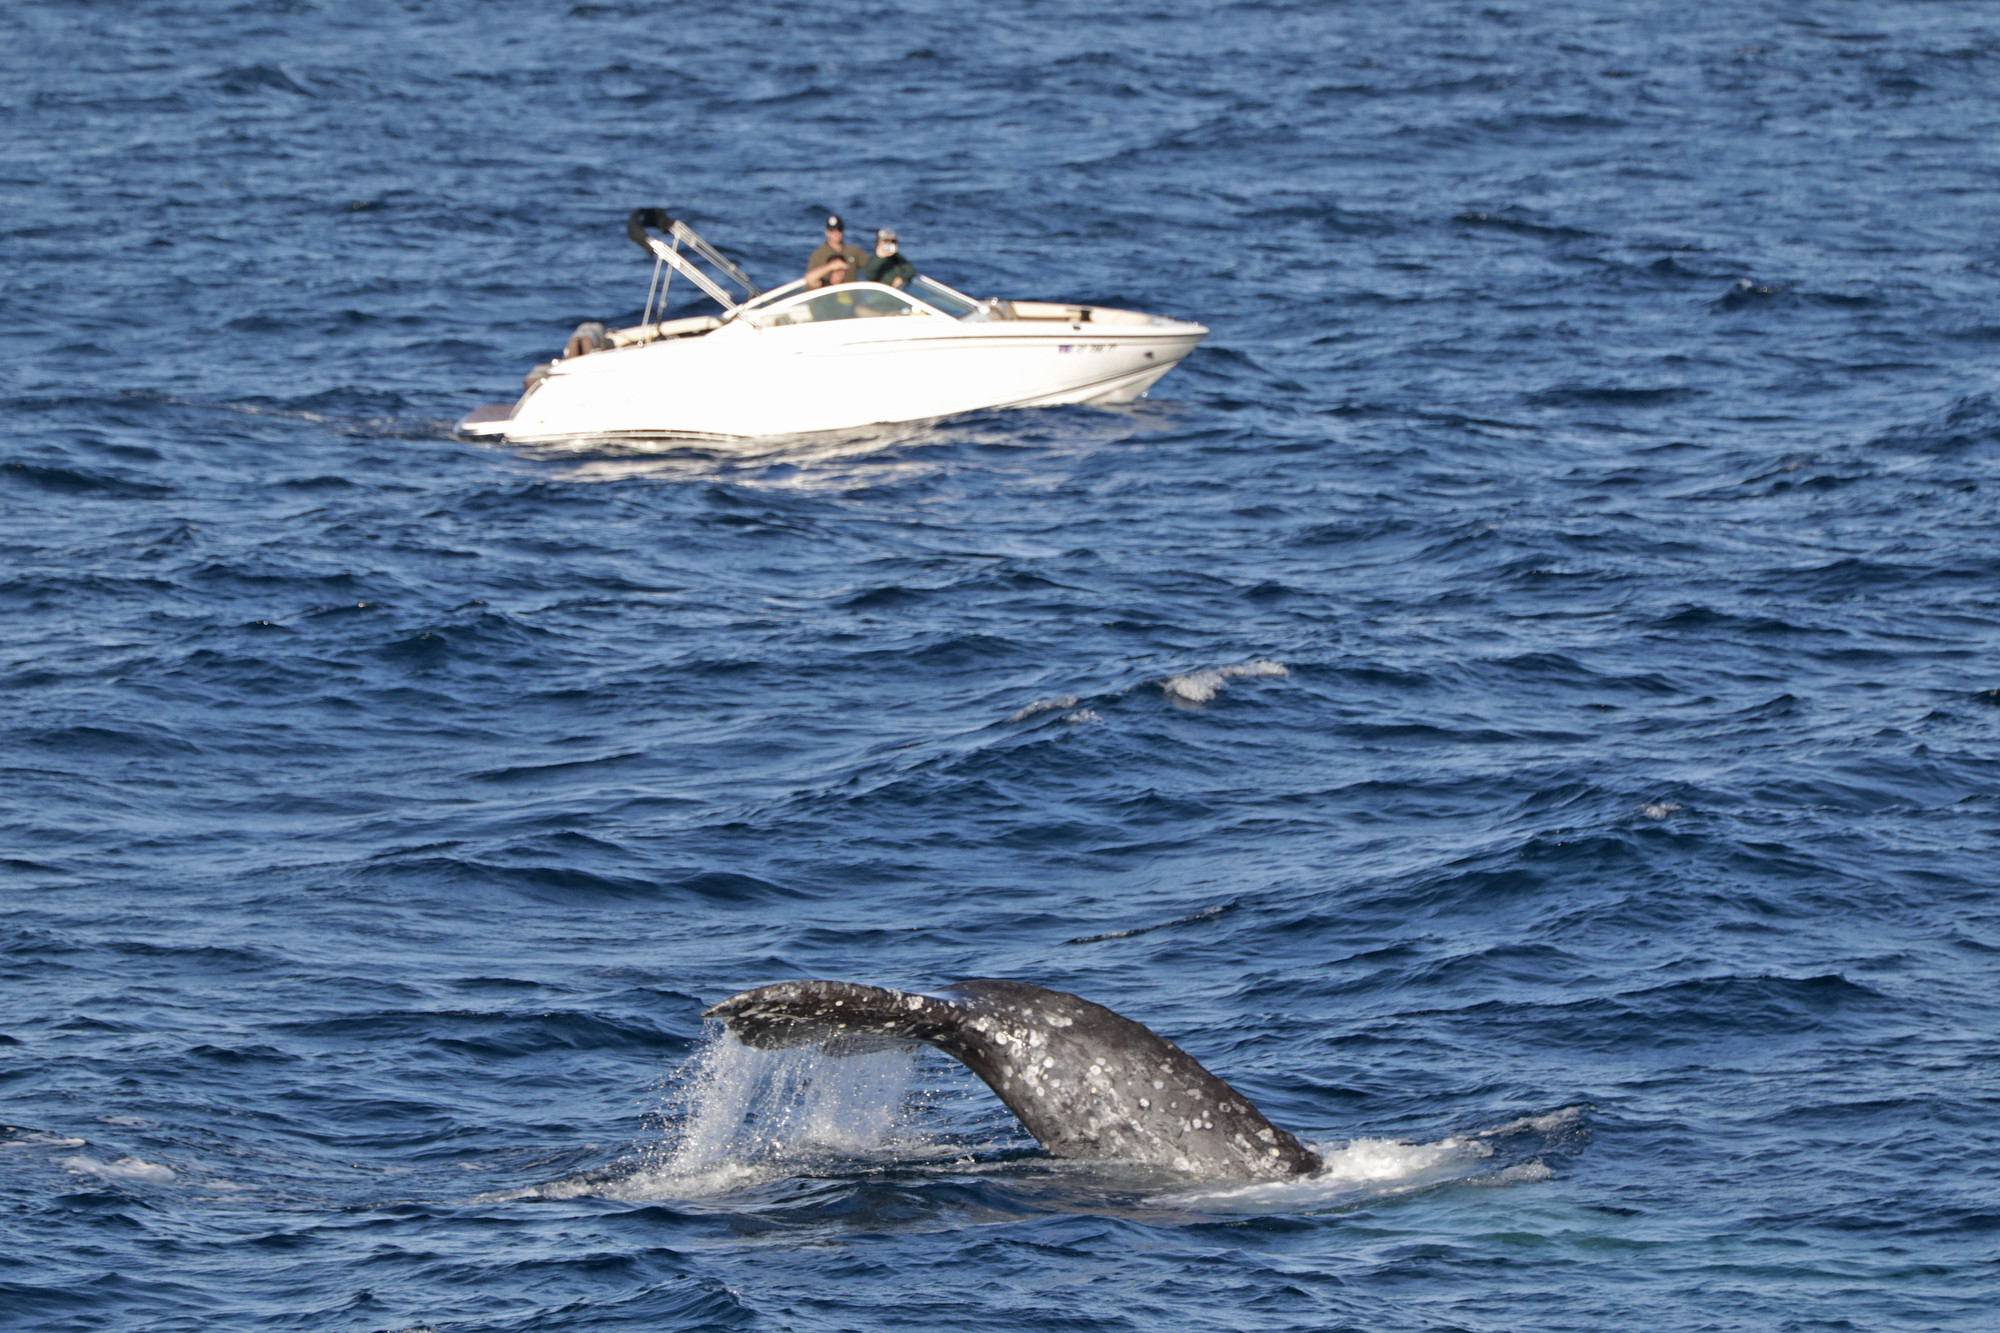 A baby gray whale's tail peeks out during one of Hornblower's Whale Watching Cruises on Jan. 29.